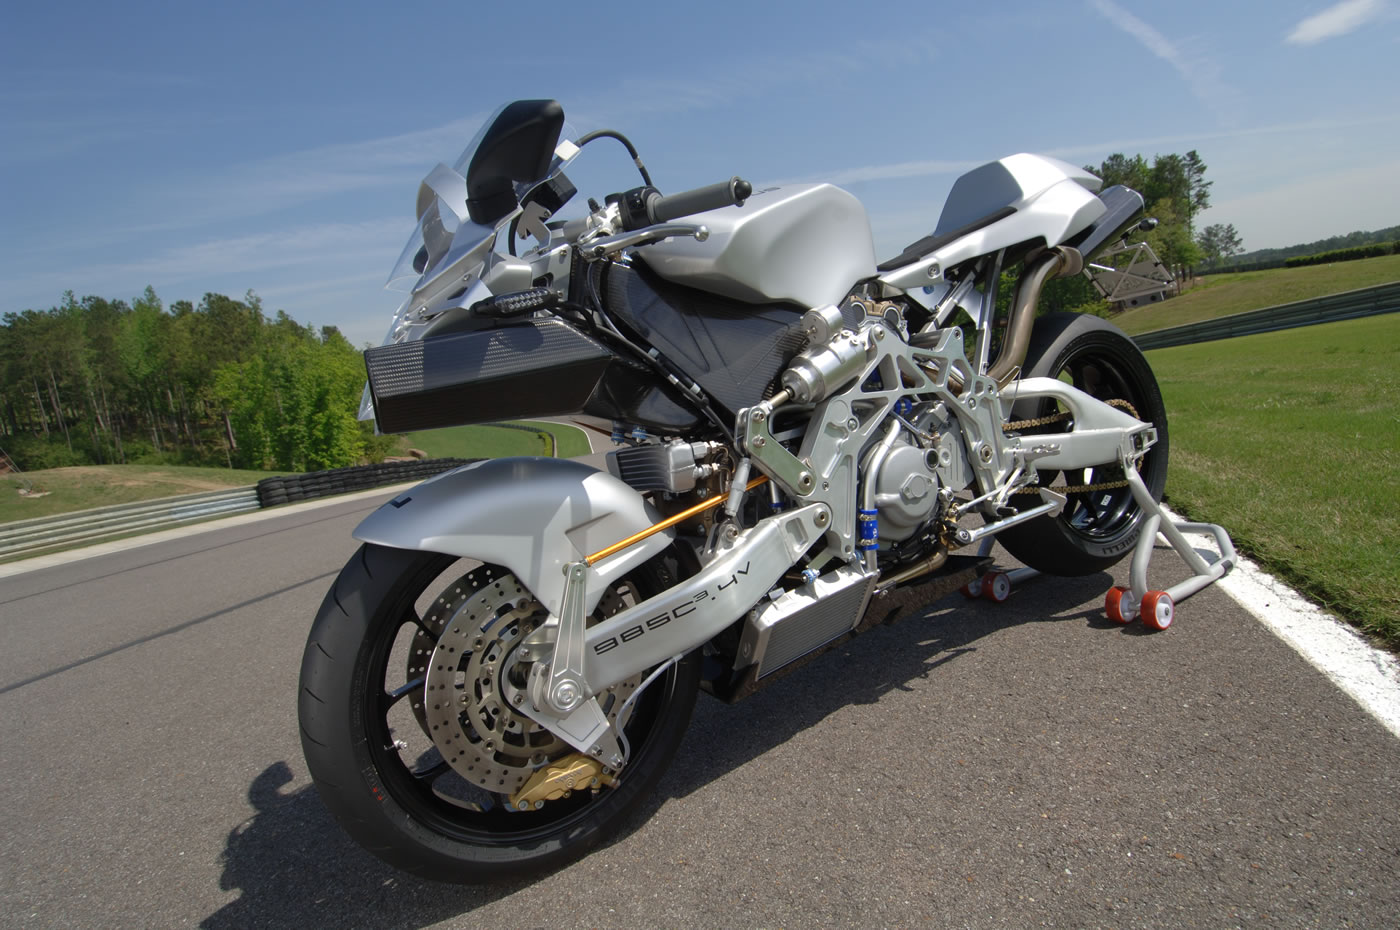 Motorcycle Patron Taker 250: description, specifications, reviews 55